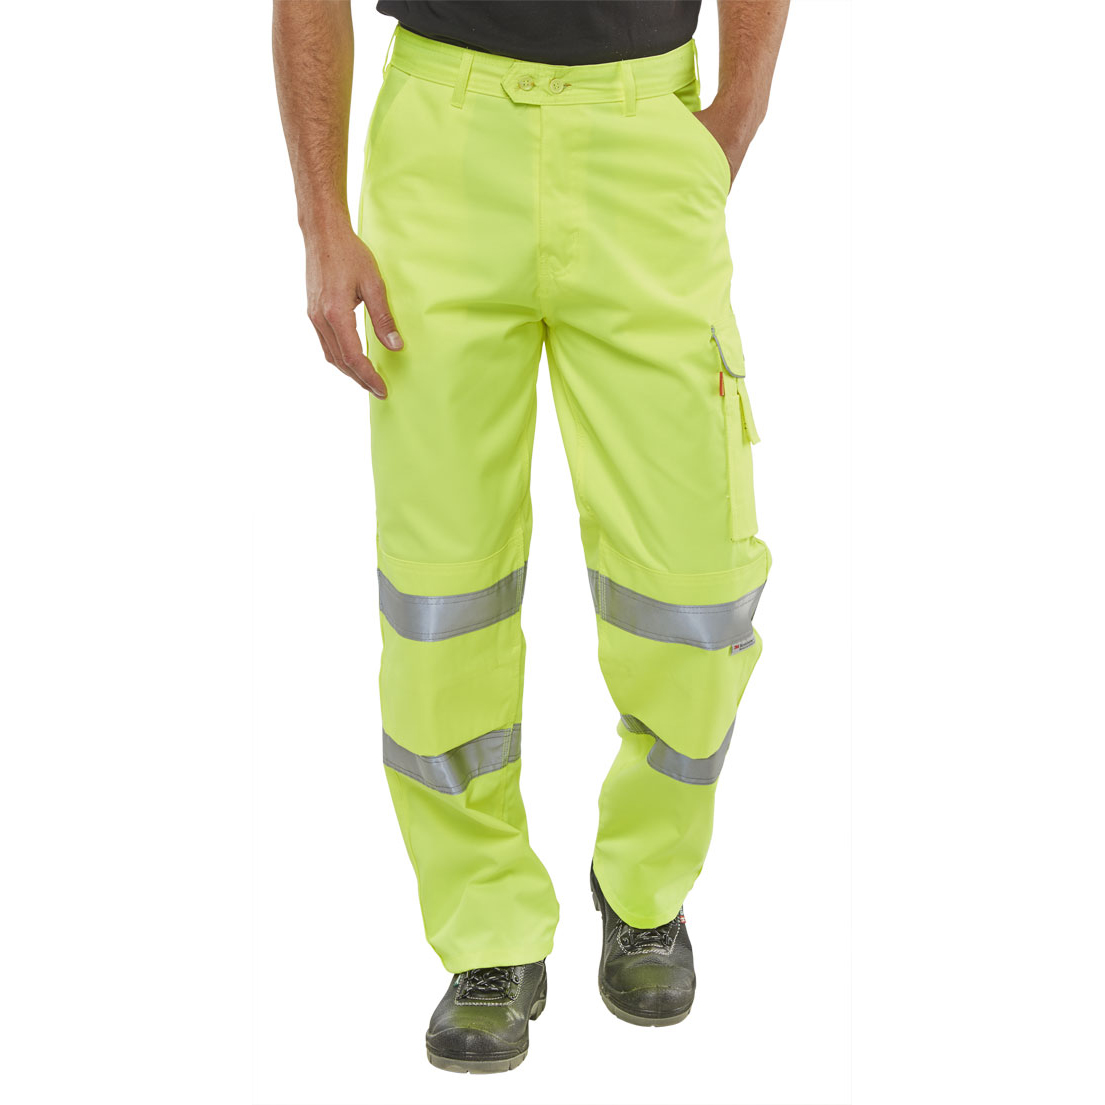 BSeen Trousers Polycotton Hi-Vis EN471 Saturn Yellow 48 Ref PCTENSY48 *Up to 3 Day Leadtime*